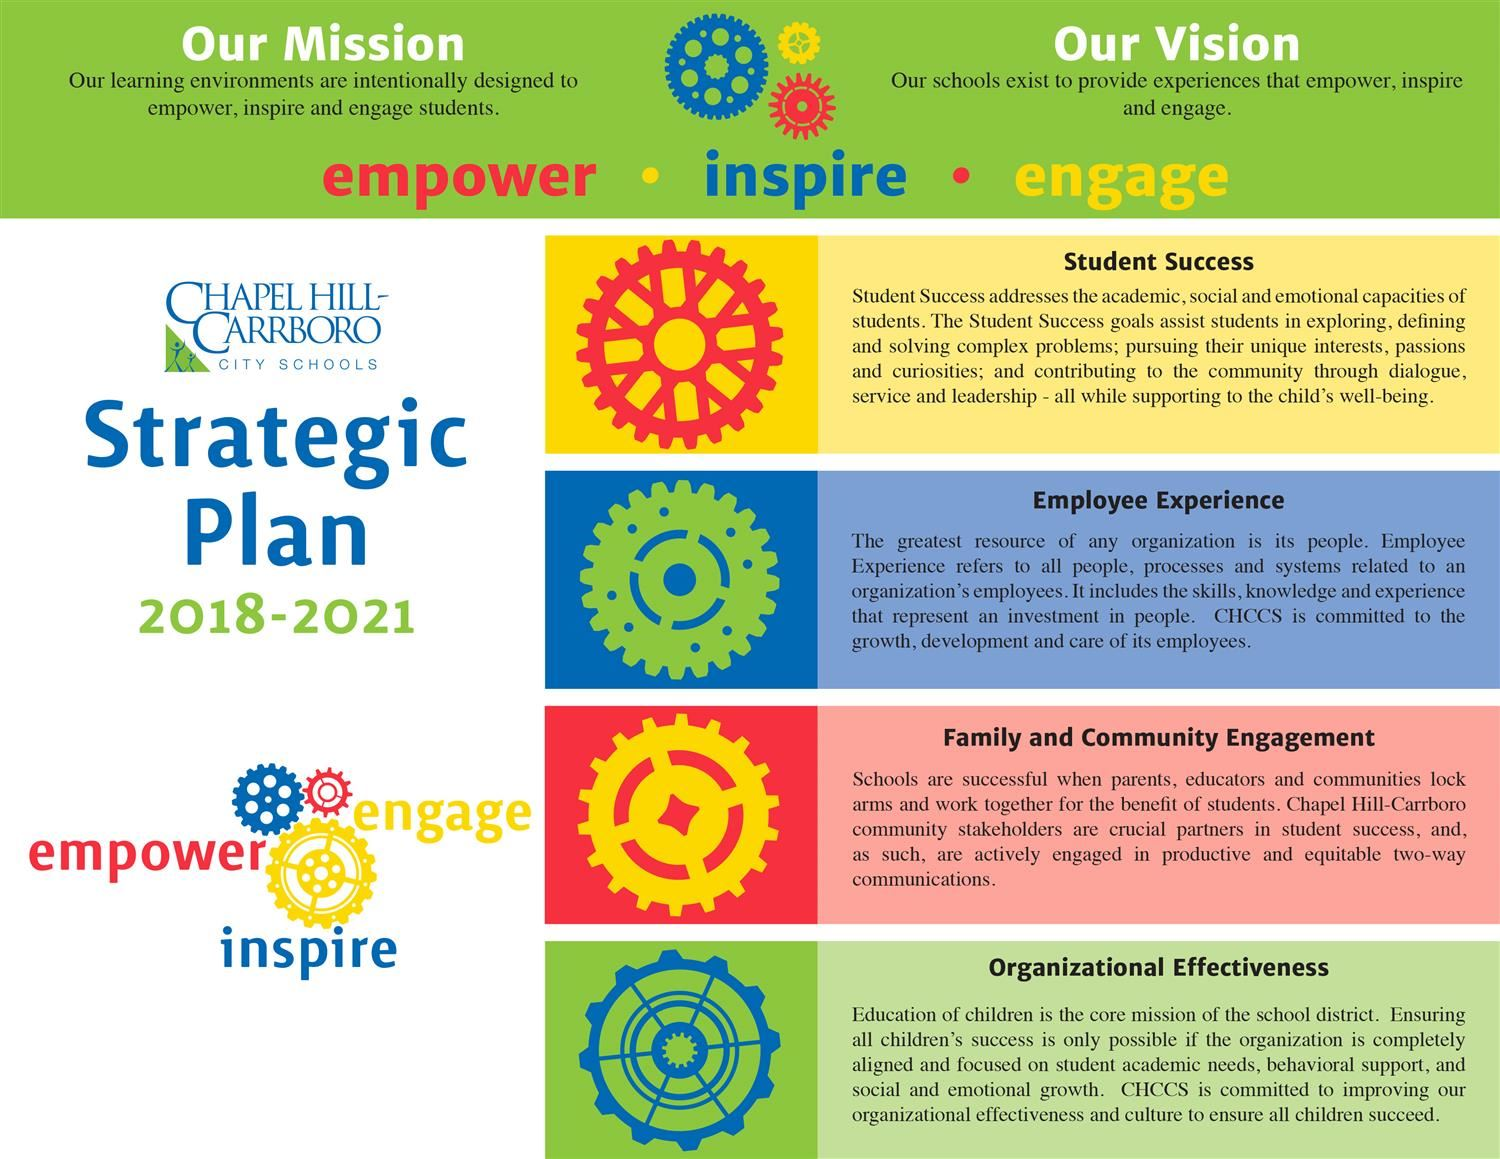 CHCCS 2018-2021 Strategic Goals Image 1